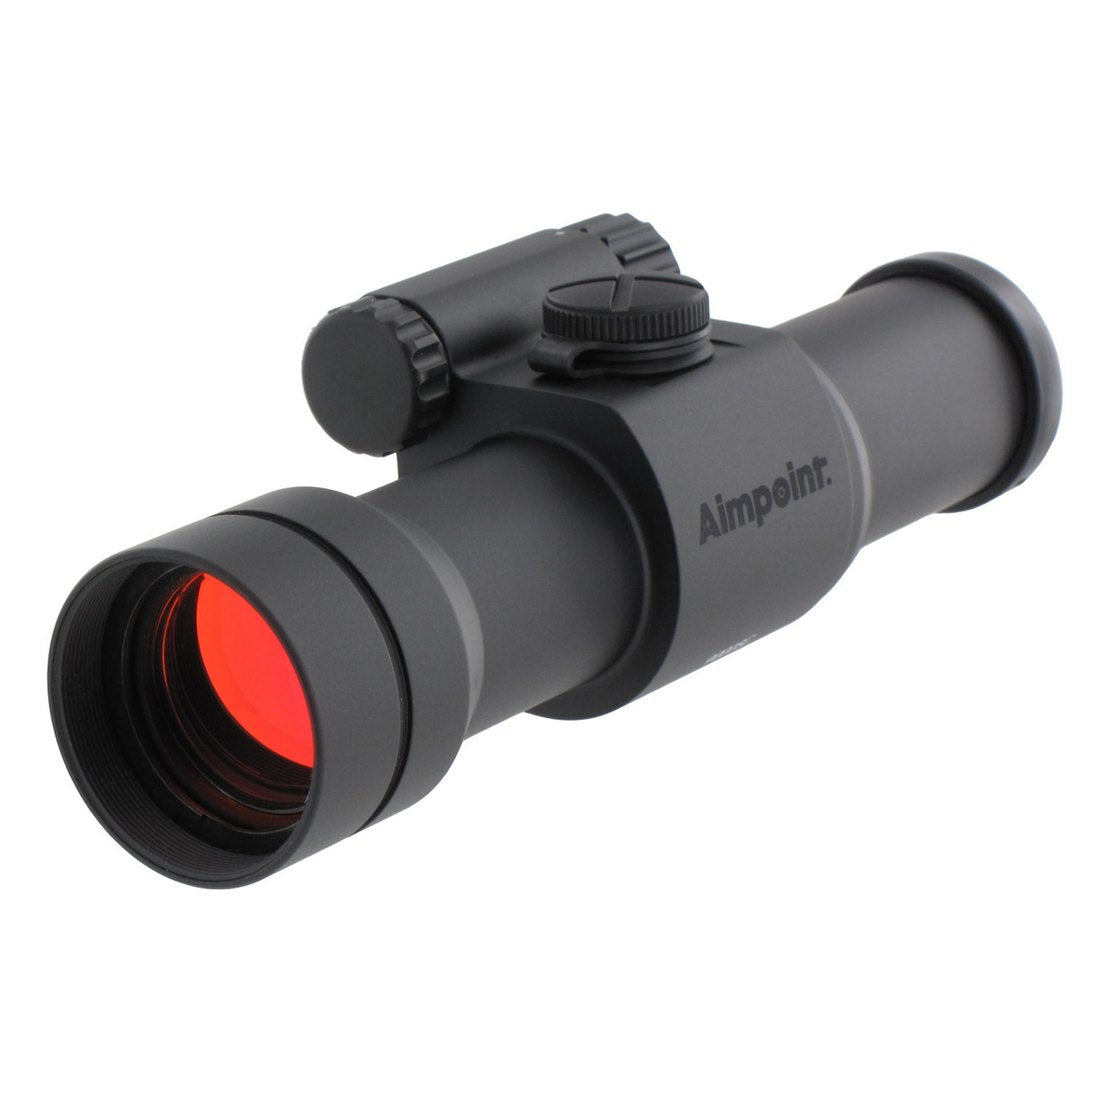 Aimpoint 200136 9000SC-NV Sight - Security Pro USA